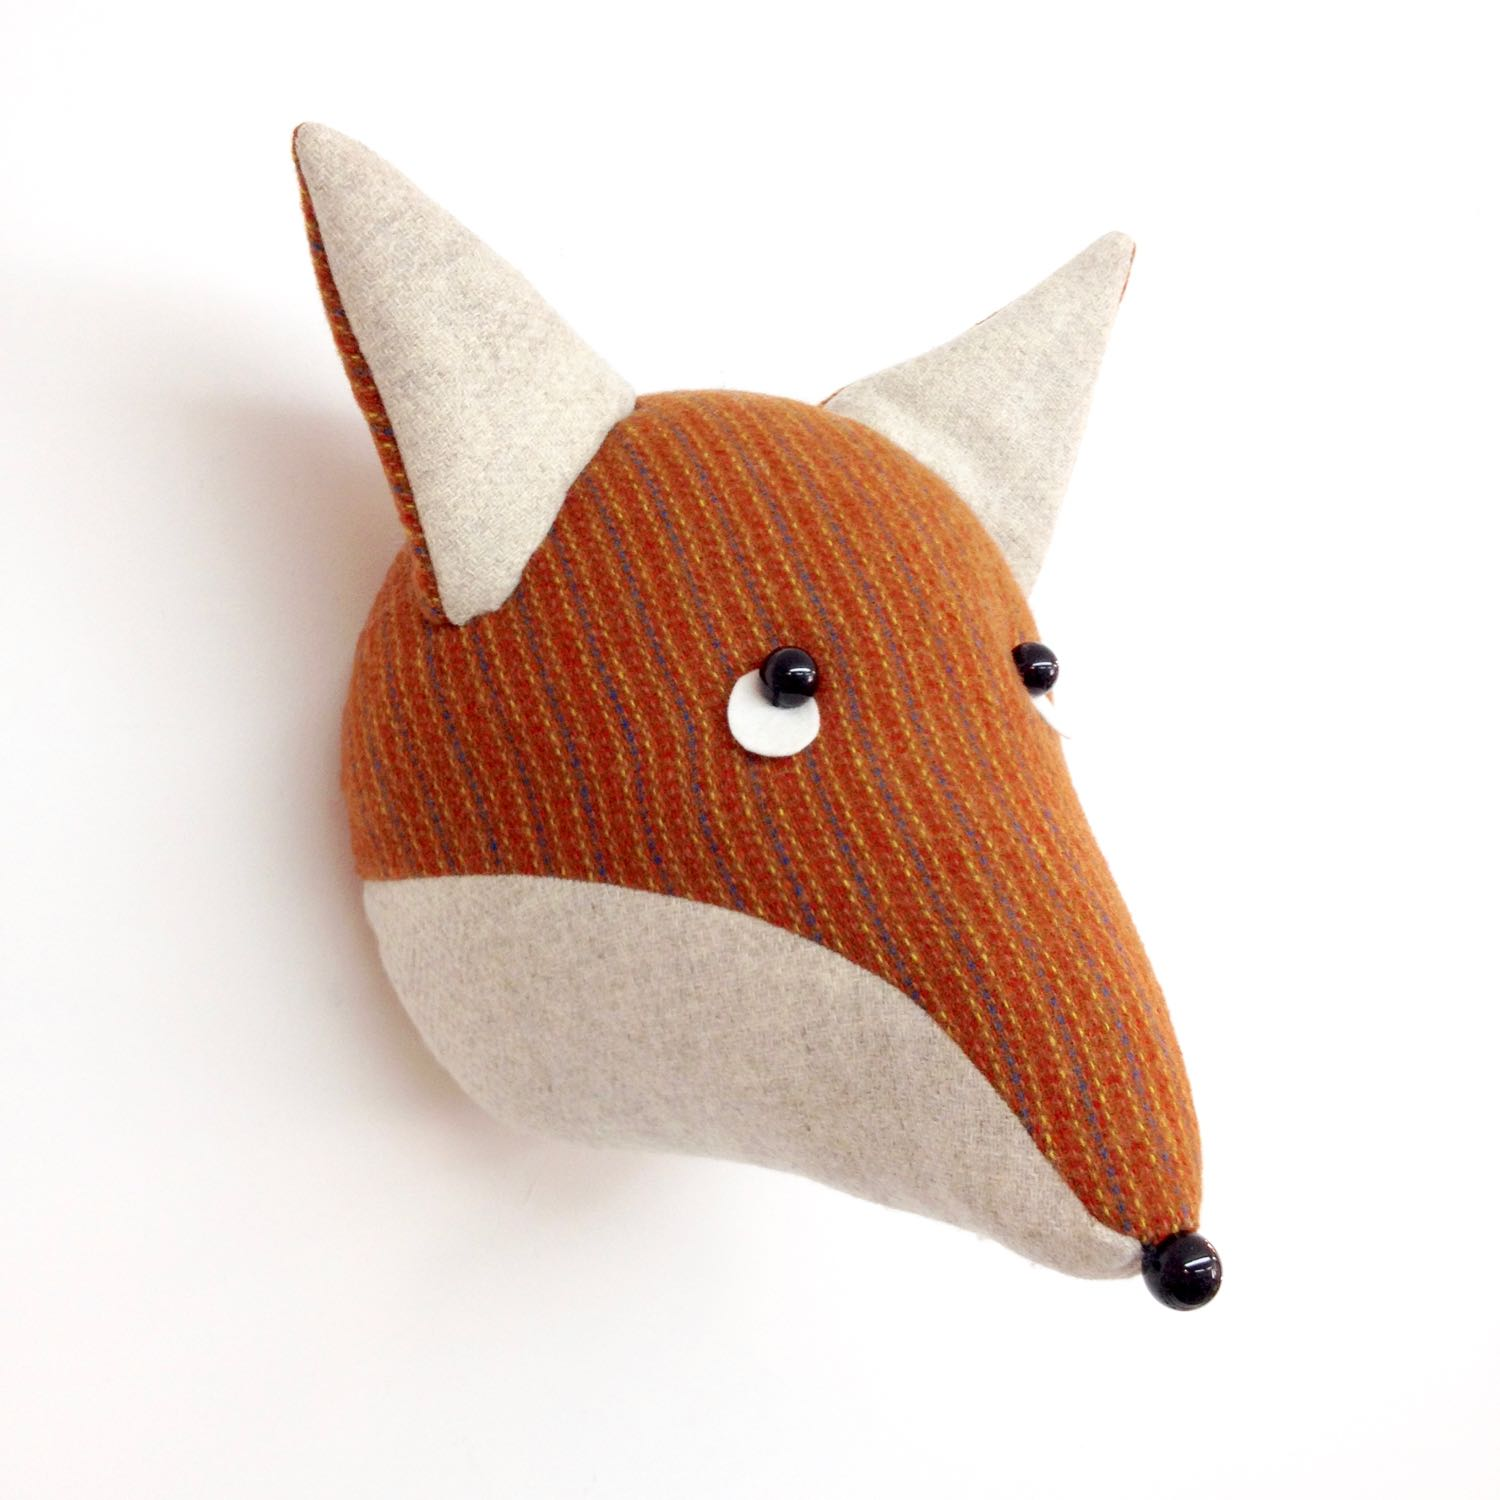 Tweed fox wall hanging by Laura Mirjami | Mirjami Design